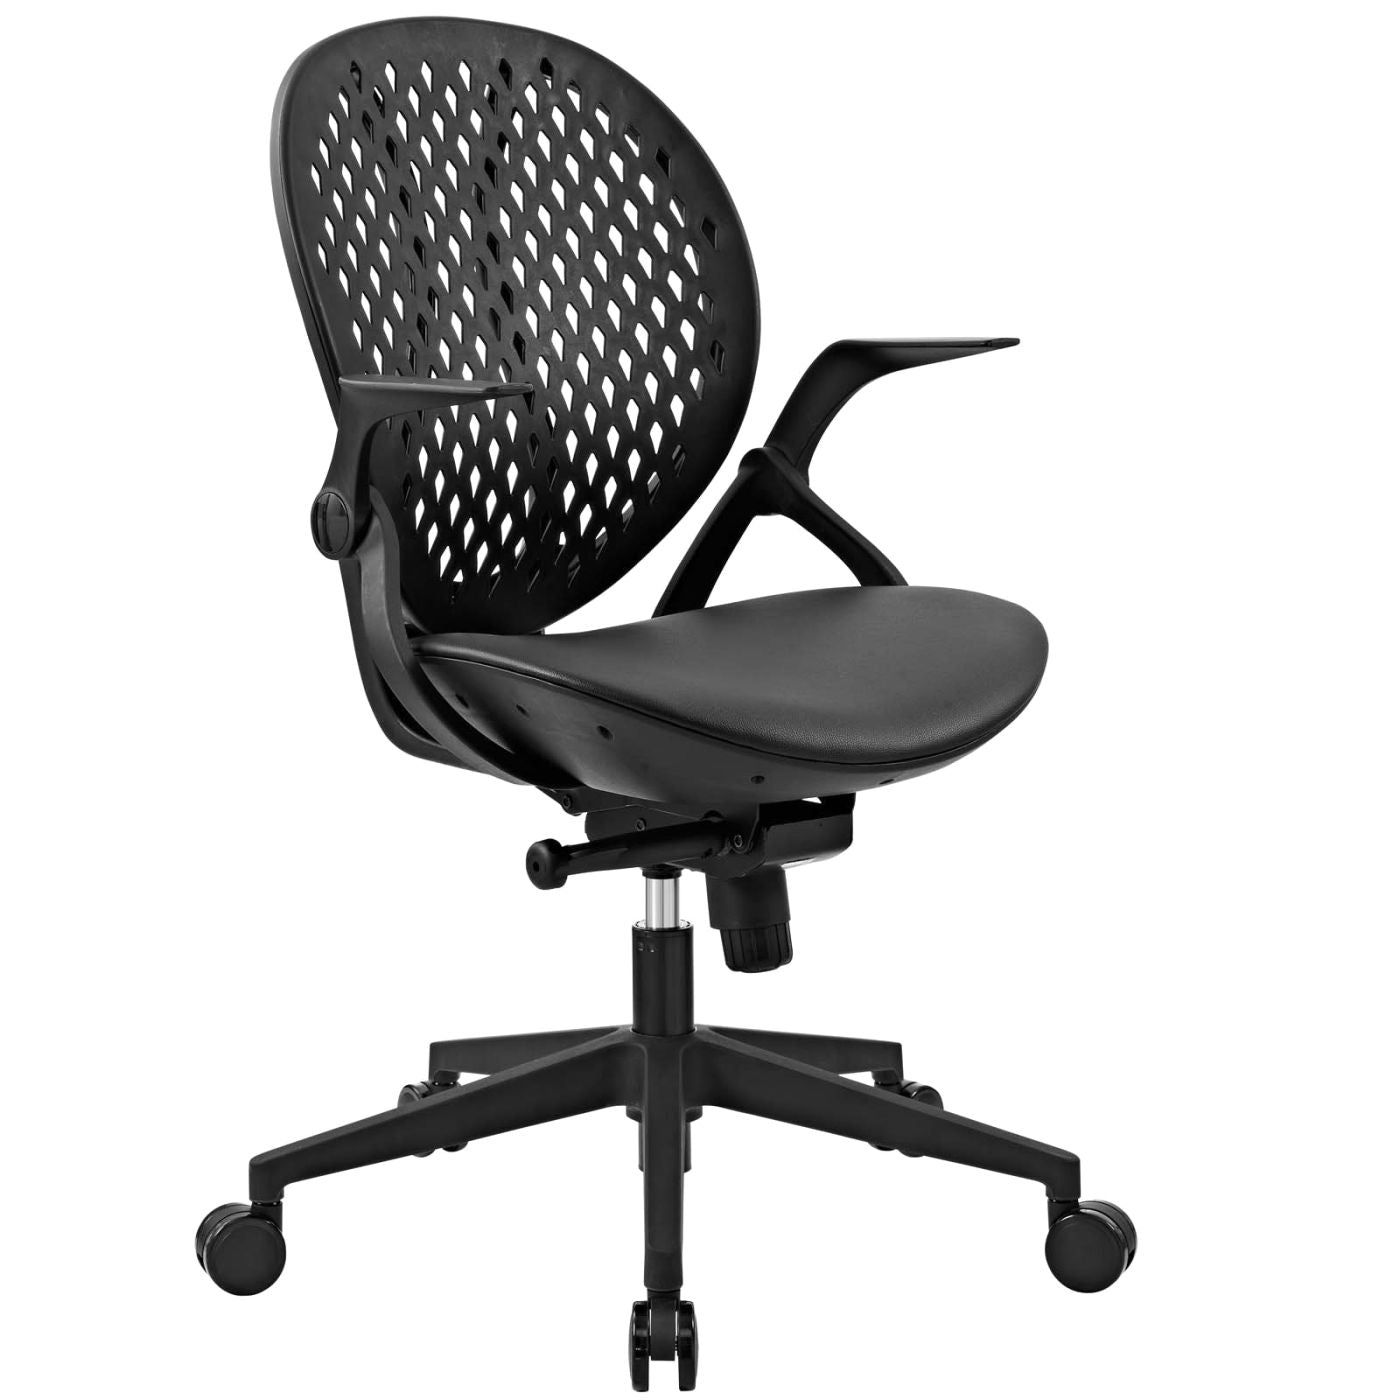 Modway Office Chairs on sale. EEI-2653-BLK Stellar Faux Leather Office  Chair only Only $186.25 at Contemporary Furniture Warehouse